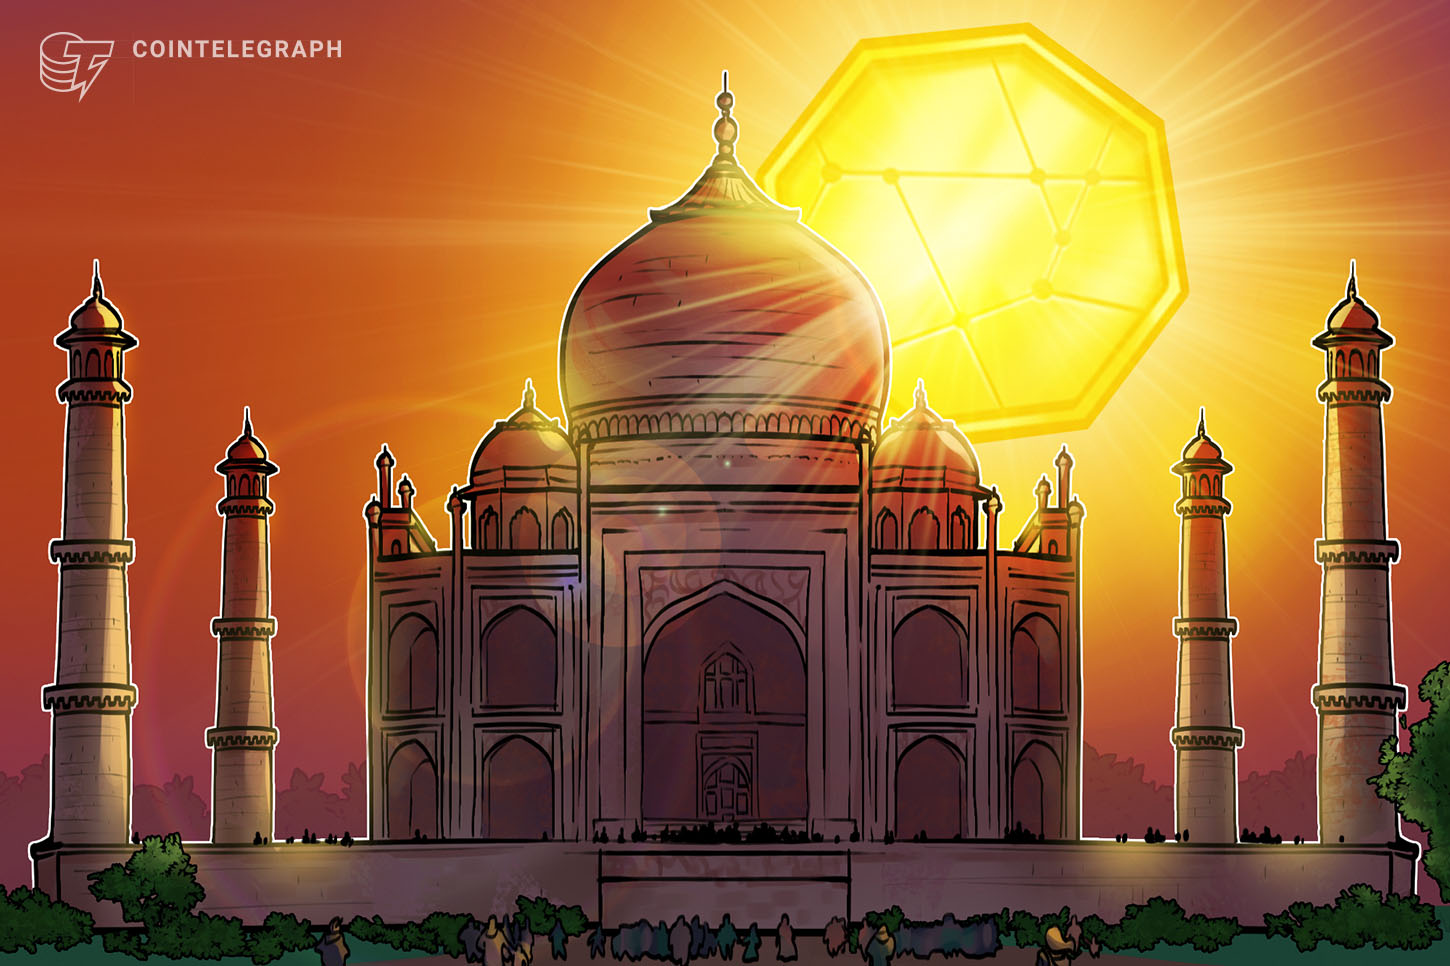 Slow, but not steady: India's stance on Bitcoin and crypto is evolving